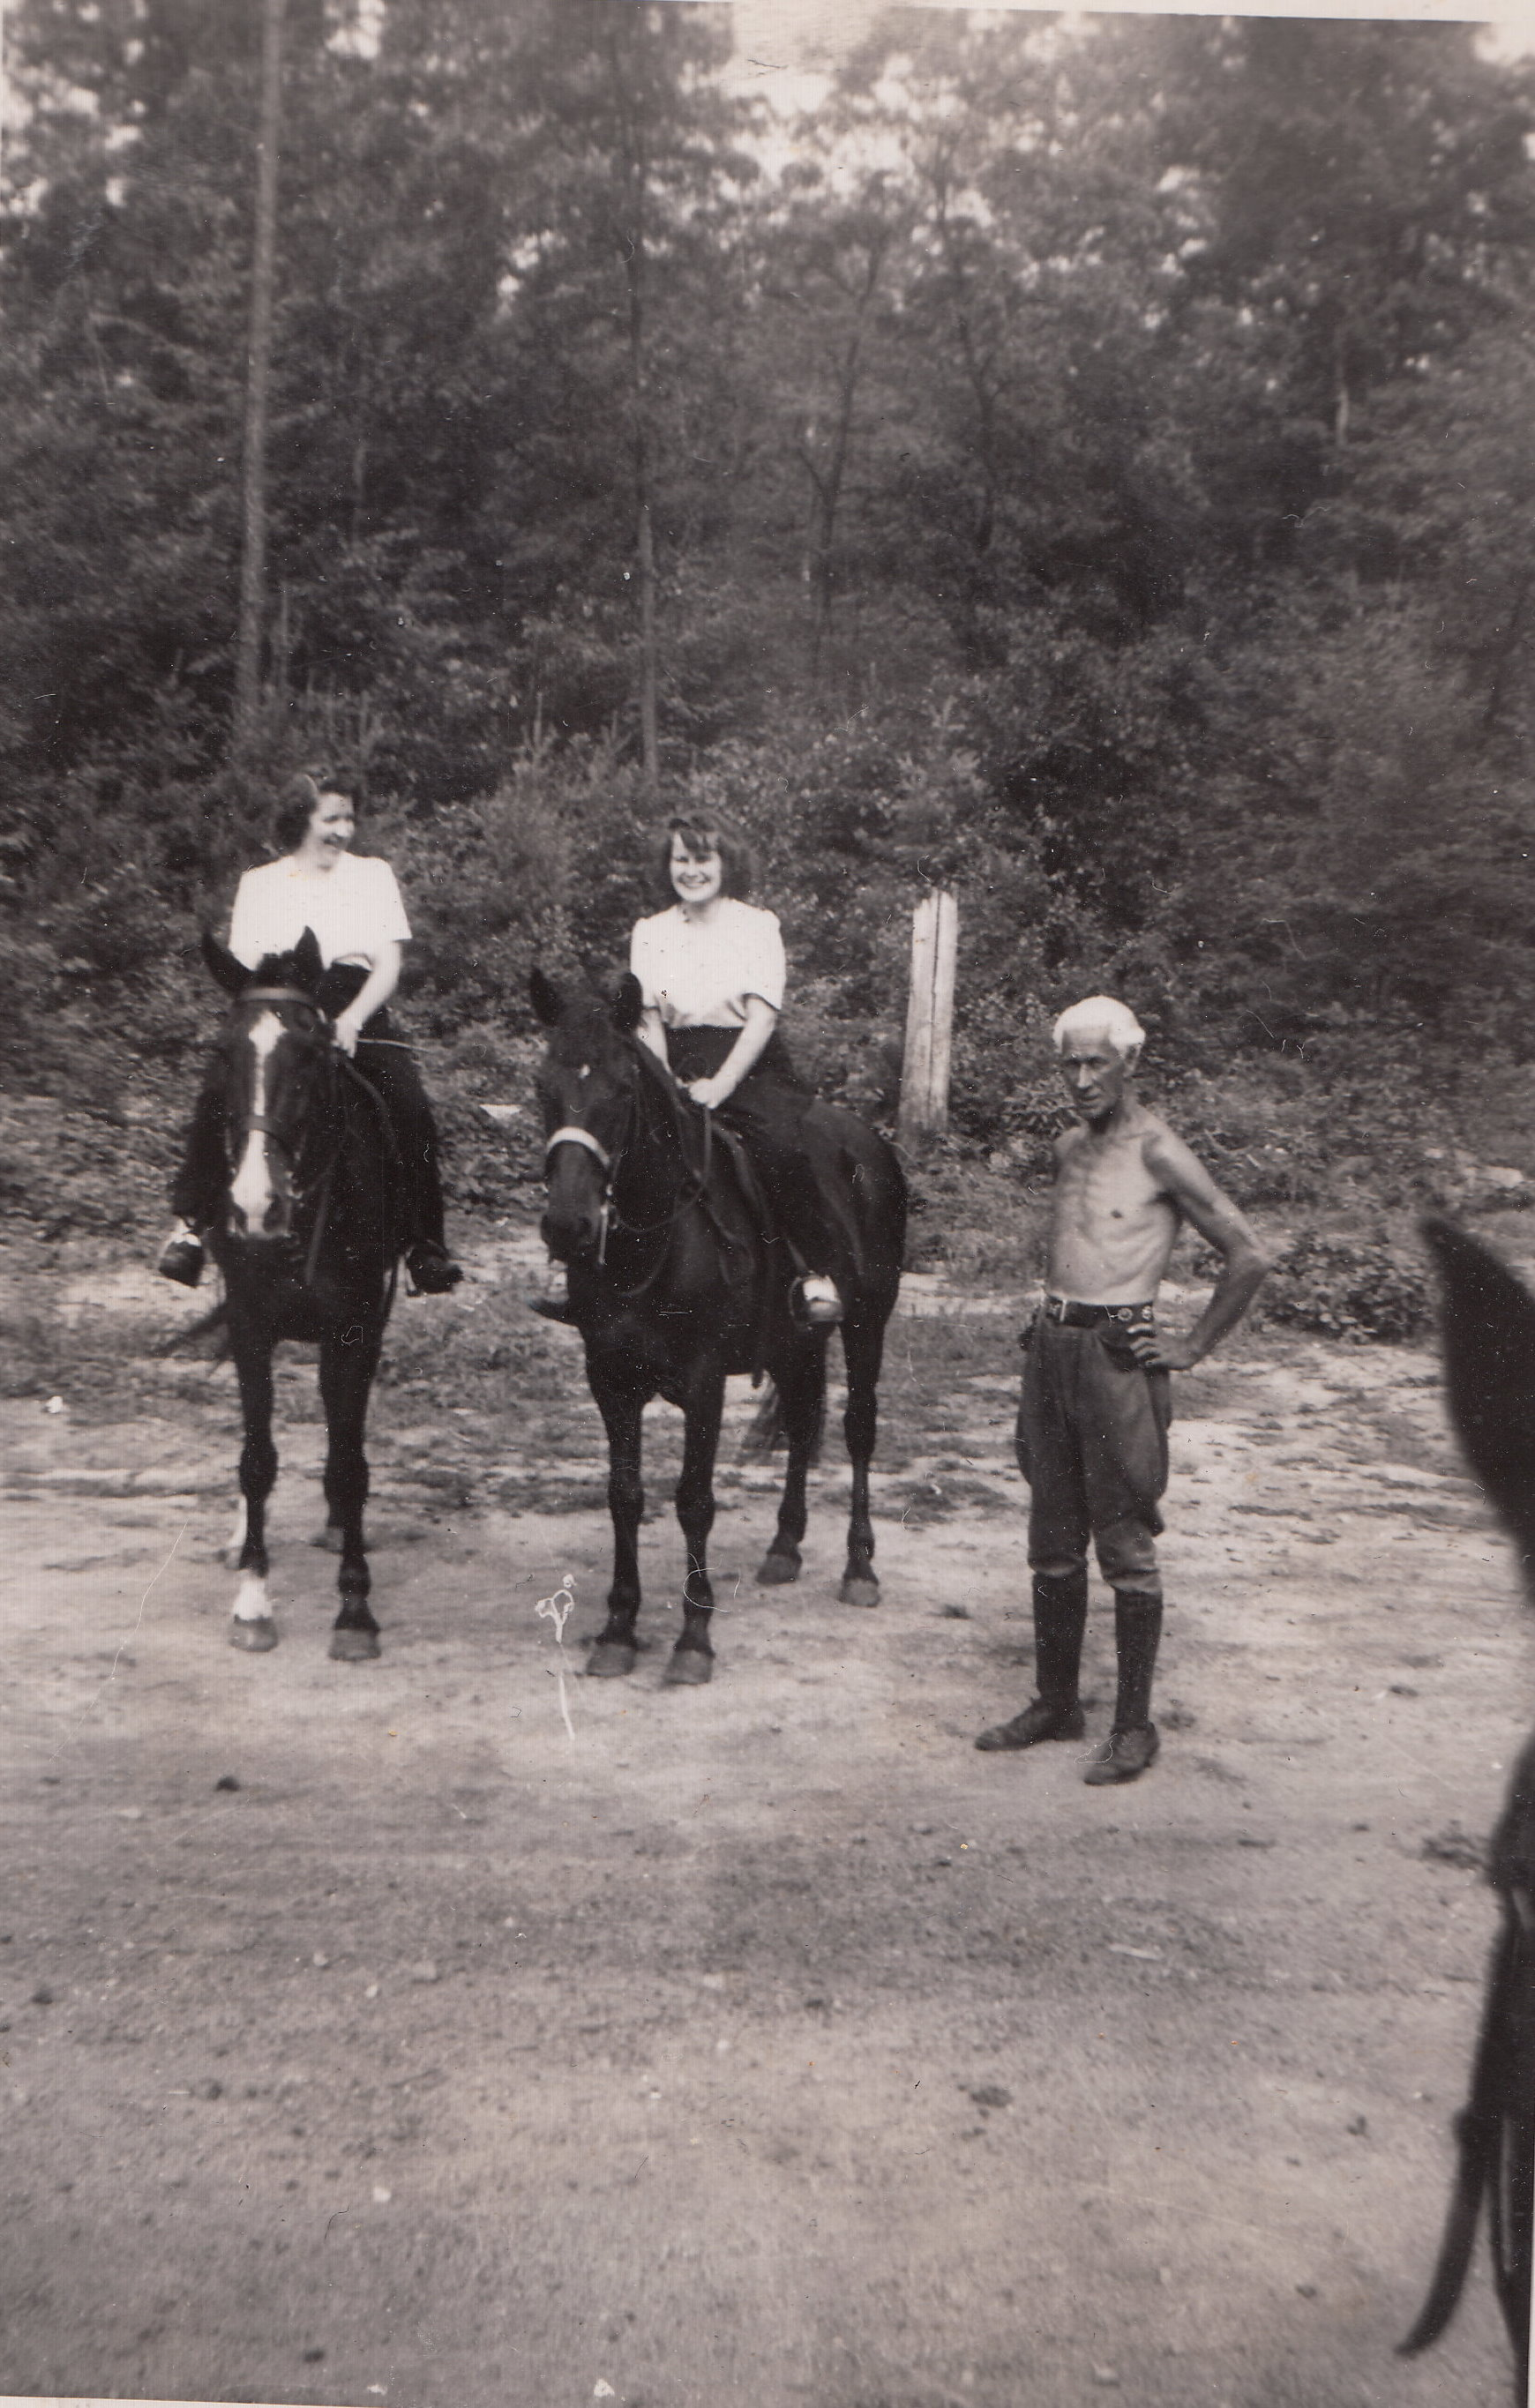 Mary Manning, Barbara Manning and unidentified Havey Stable employee at Havey Stables, 1940s.